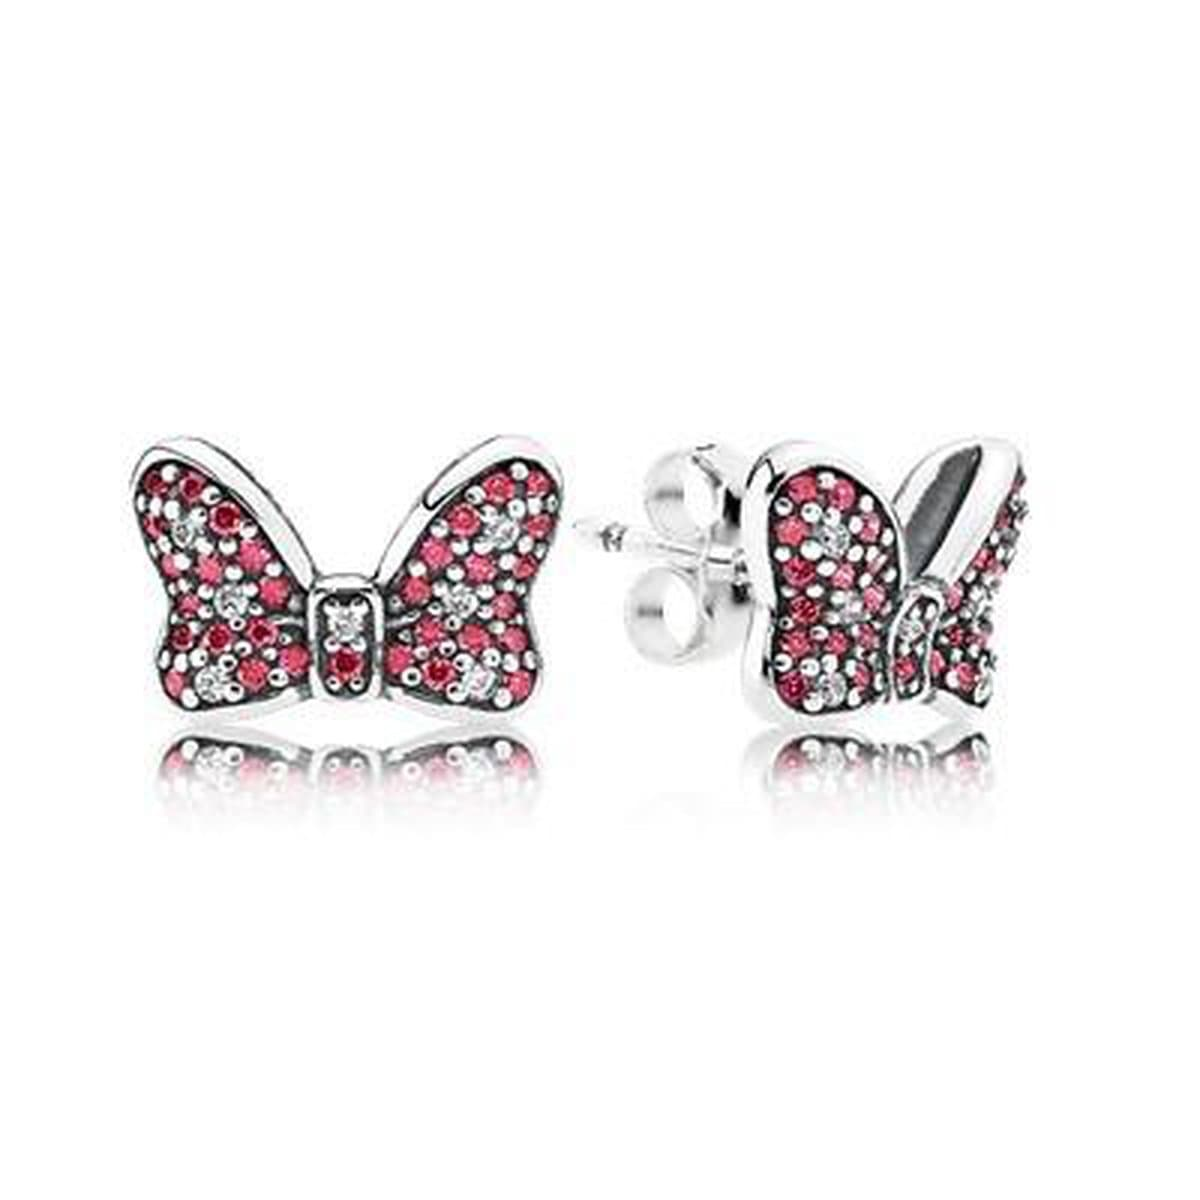 Disney Minnie's Sparkling Bow Earrings - 290578CZR-Pandora-Renee Taylor Gallery